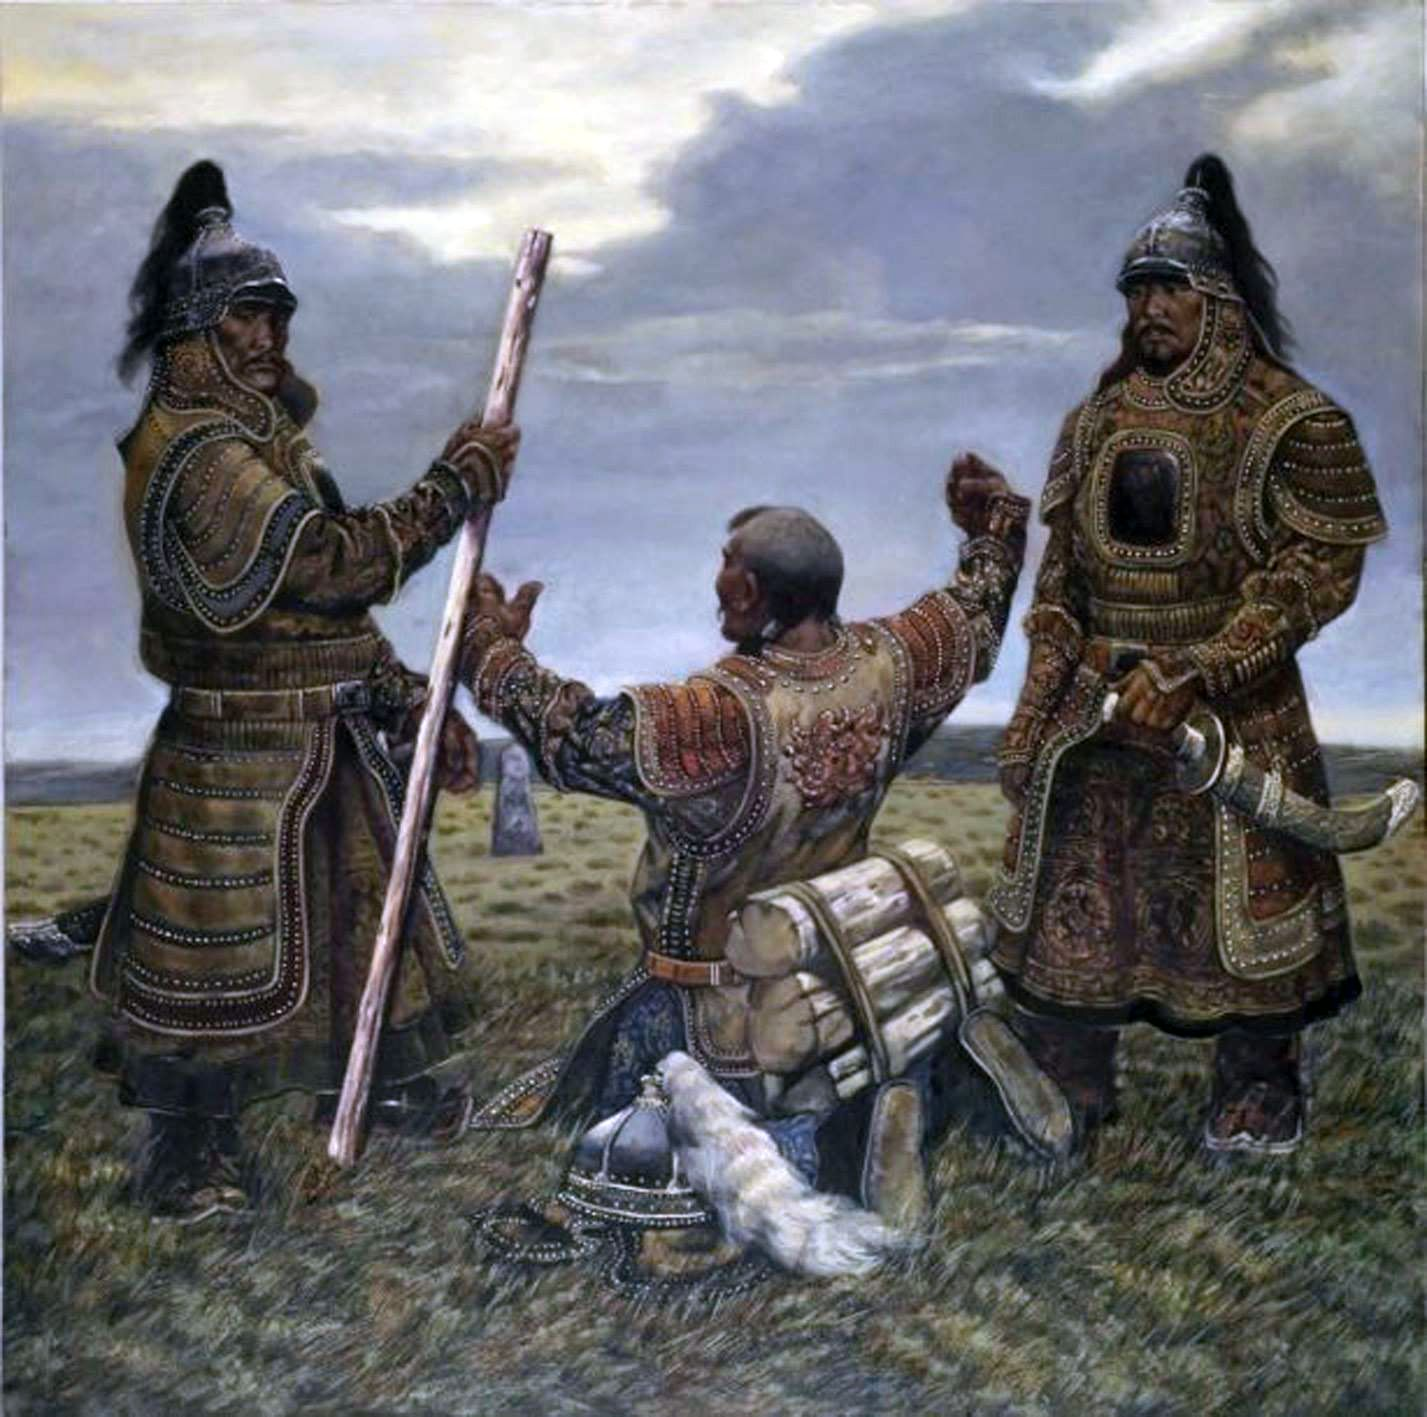 genghis khan and his bodyguards mongol war art  genghis khan and his bodyguards